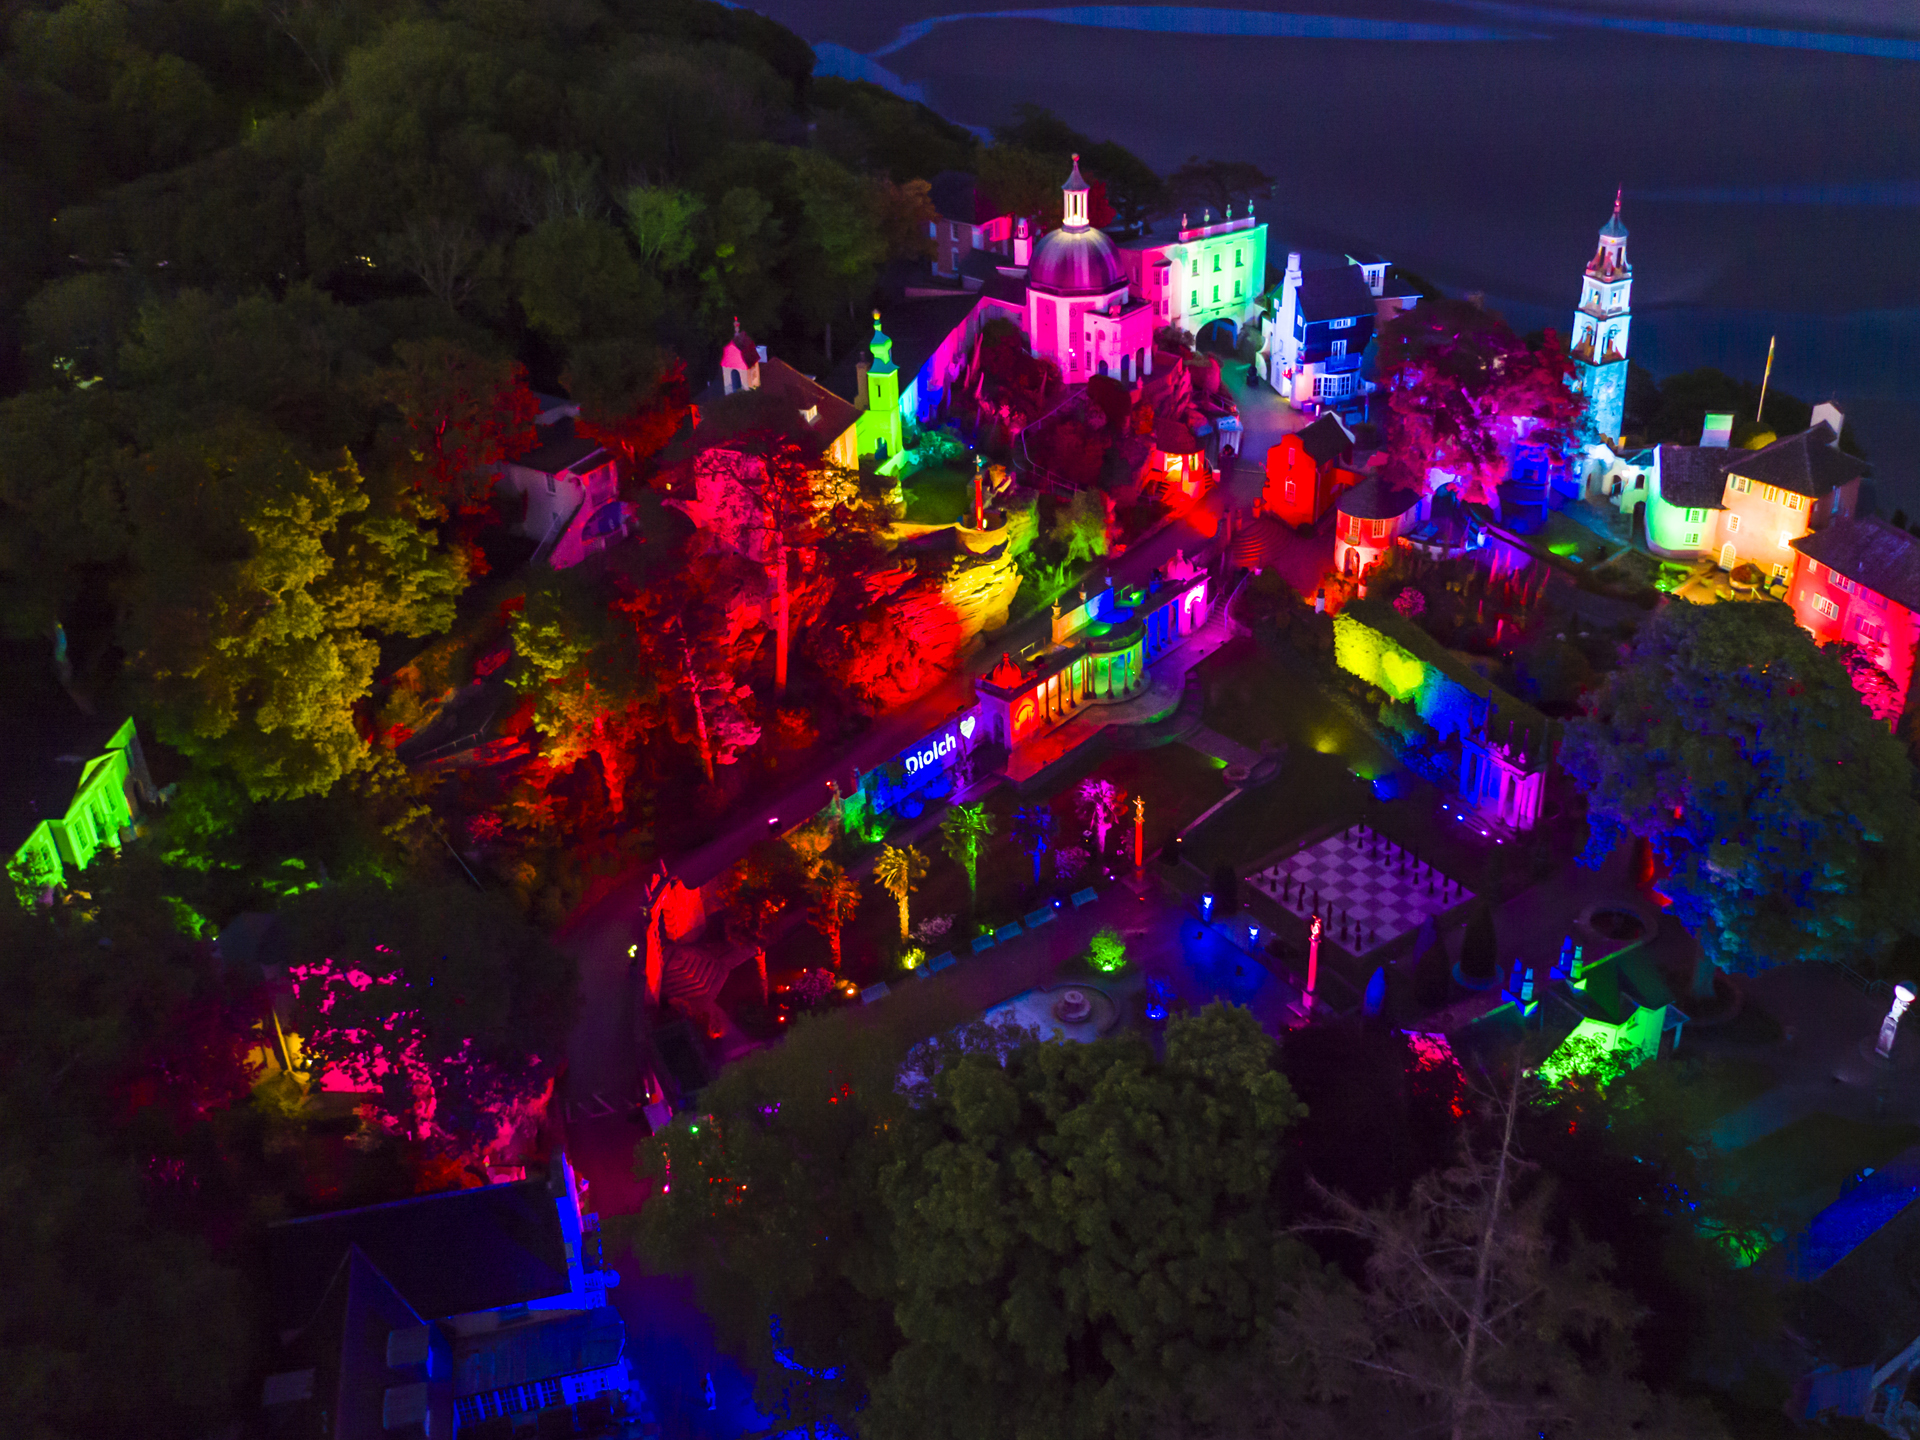 Portmeirion Lit Up Rainbow Lighting Lights Outdoor Building Projection Mapping NHS